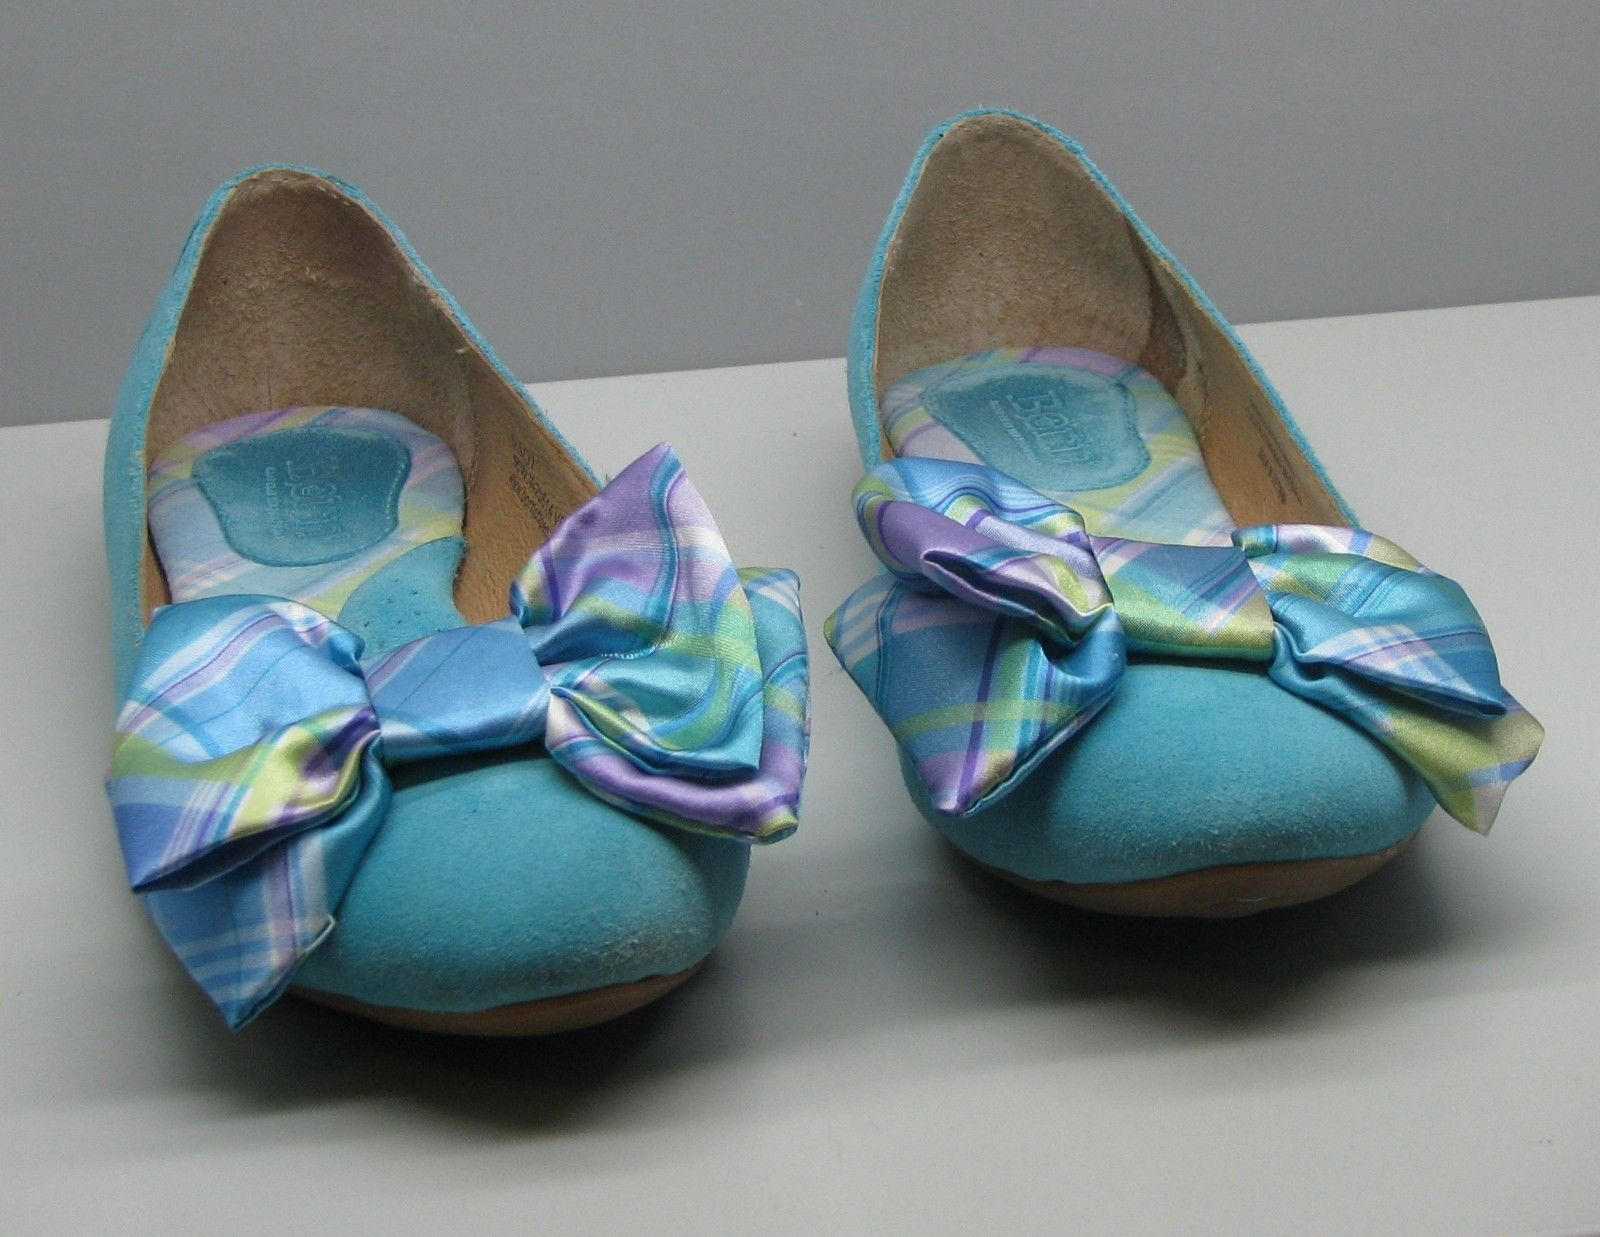 BORN Shoes Woman's 6.5 / 37 Turquoise Suede Fancy BOW Ballet Flats WOW